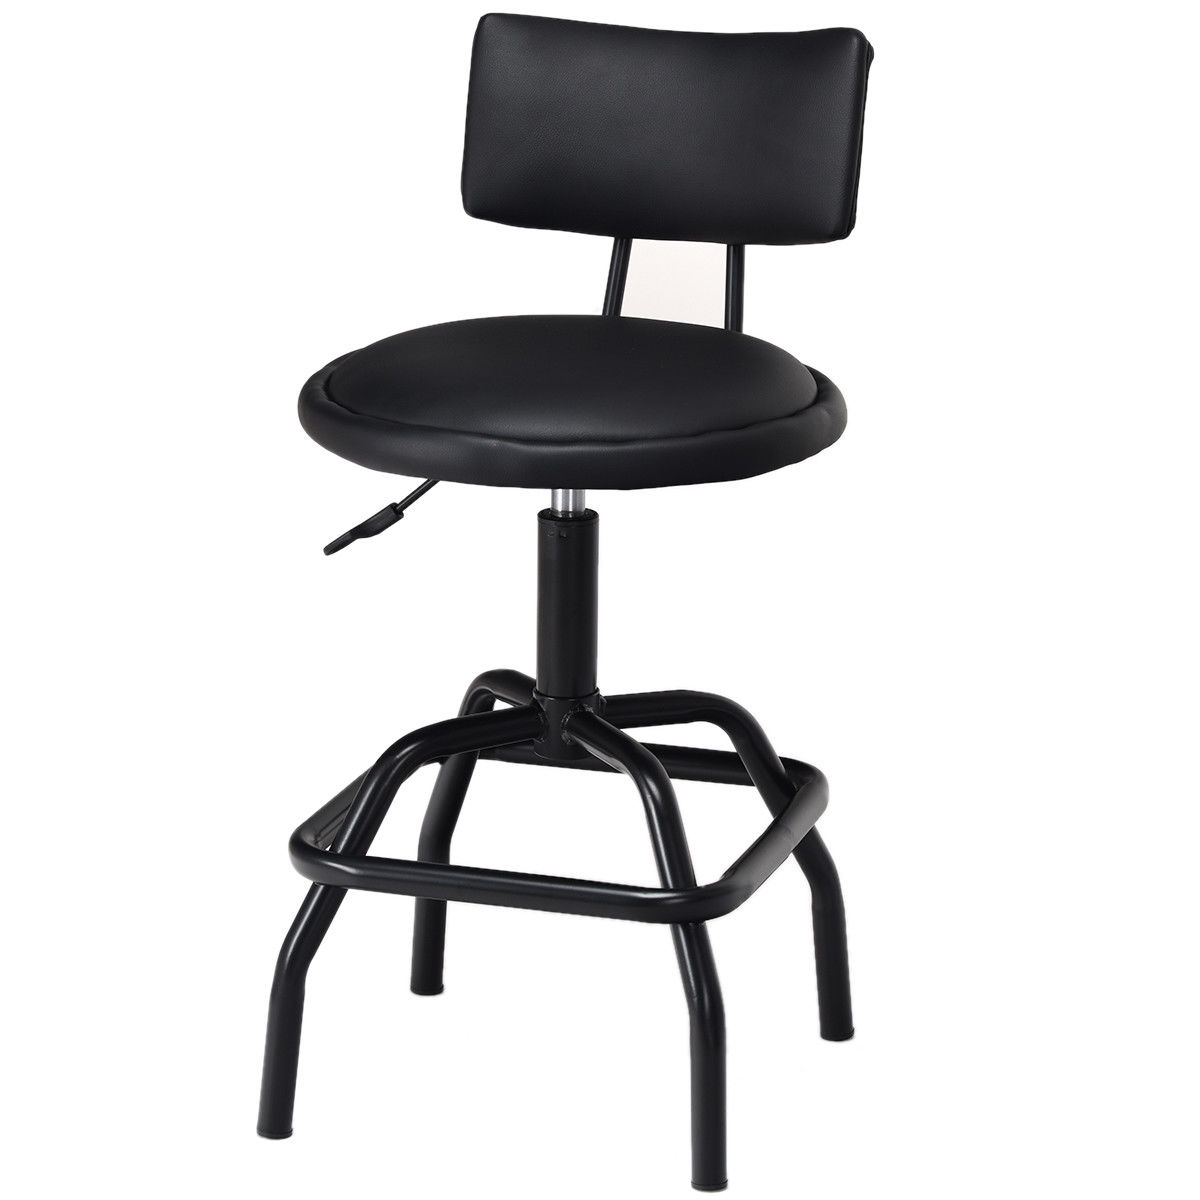 Costway Adjustable Swivel Bar Stool PU Leather Steel Frame Chair W/Backrest&Footrest